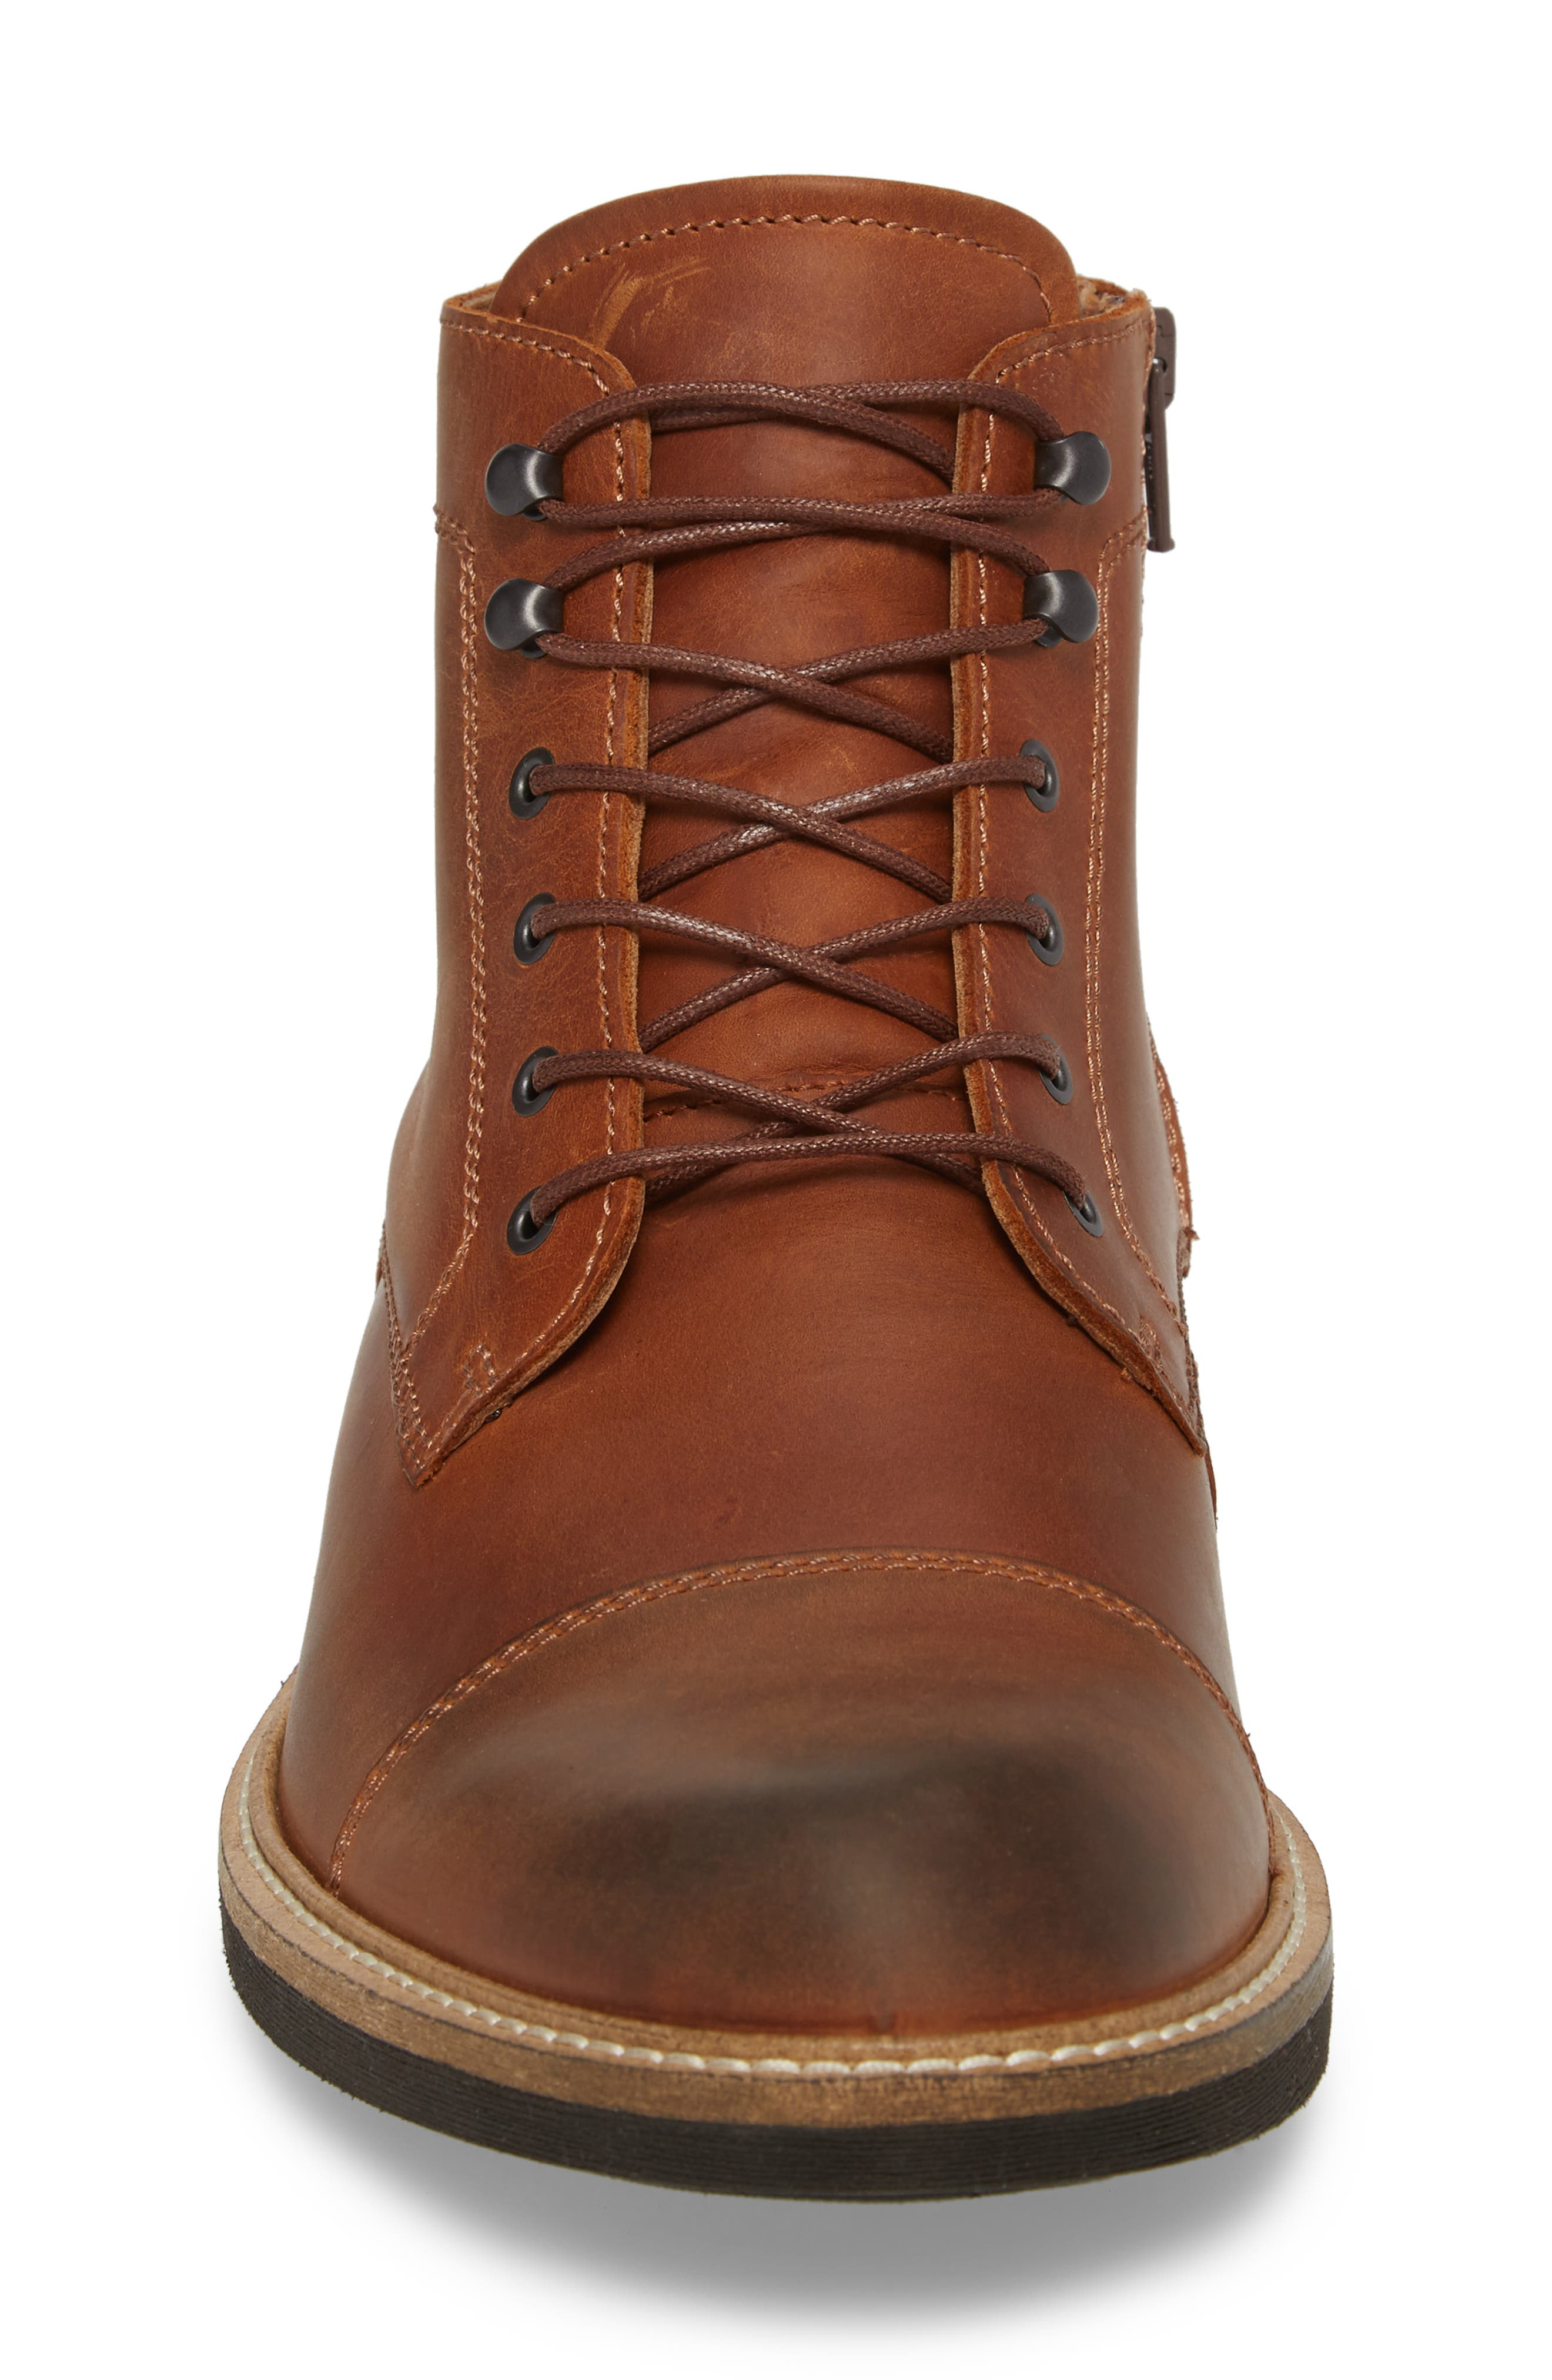 Kenton Vintage Cap Toe Boot,                             Alternate thumbnail 4, color,                             Cognac Leather